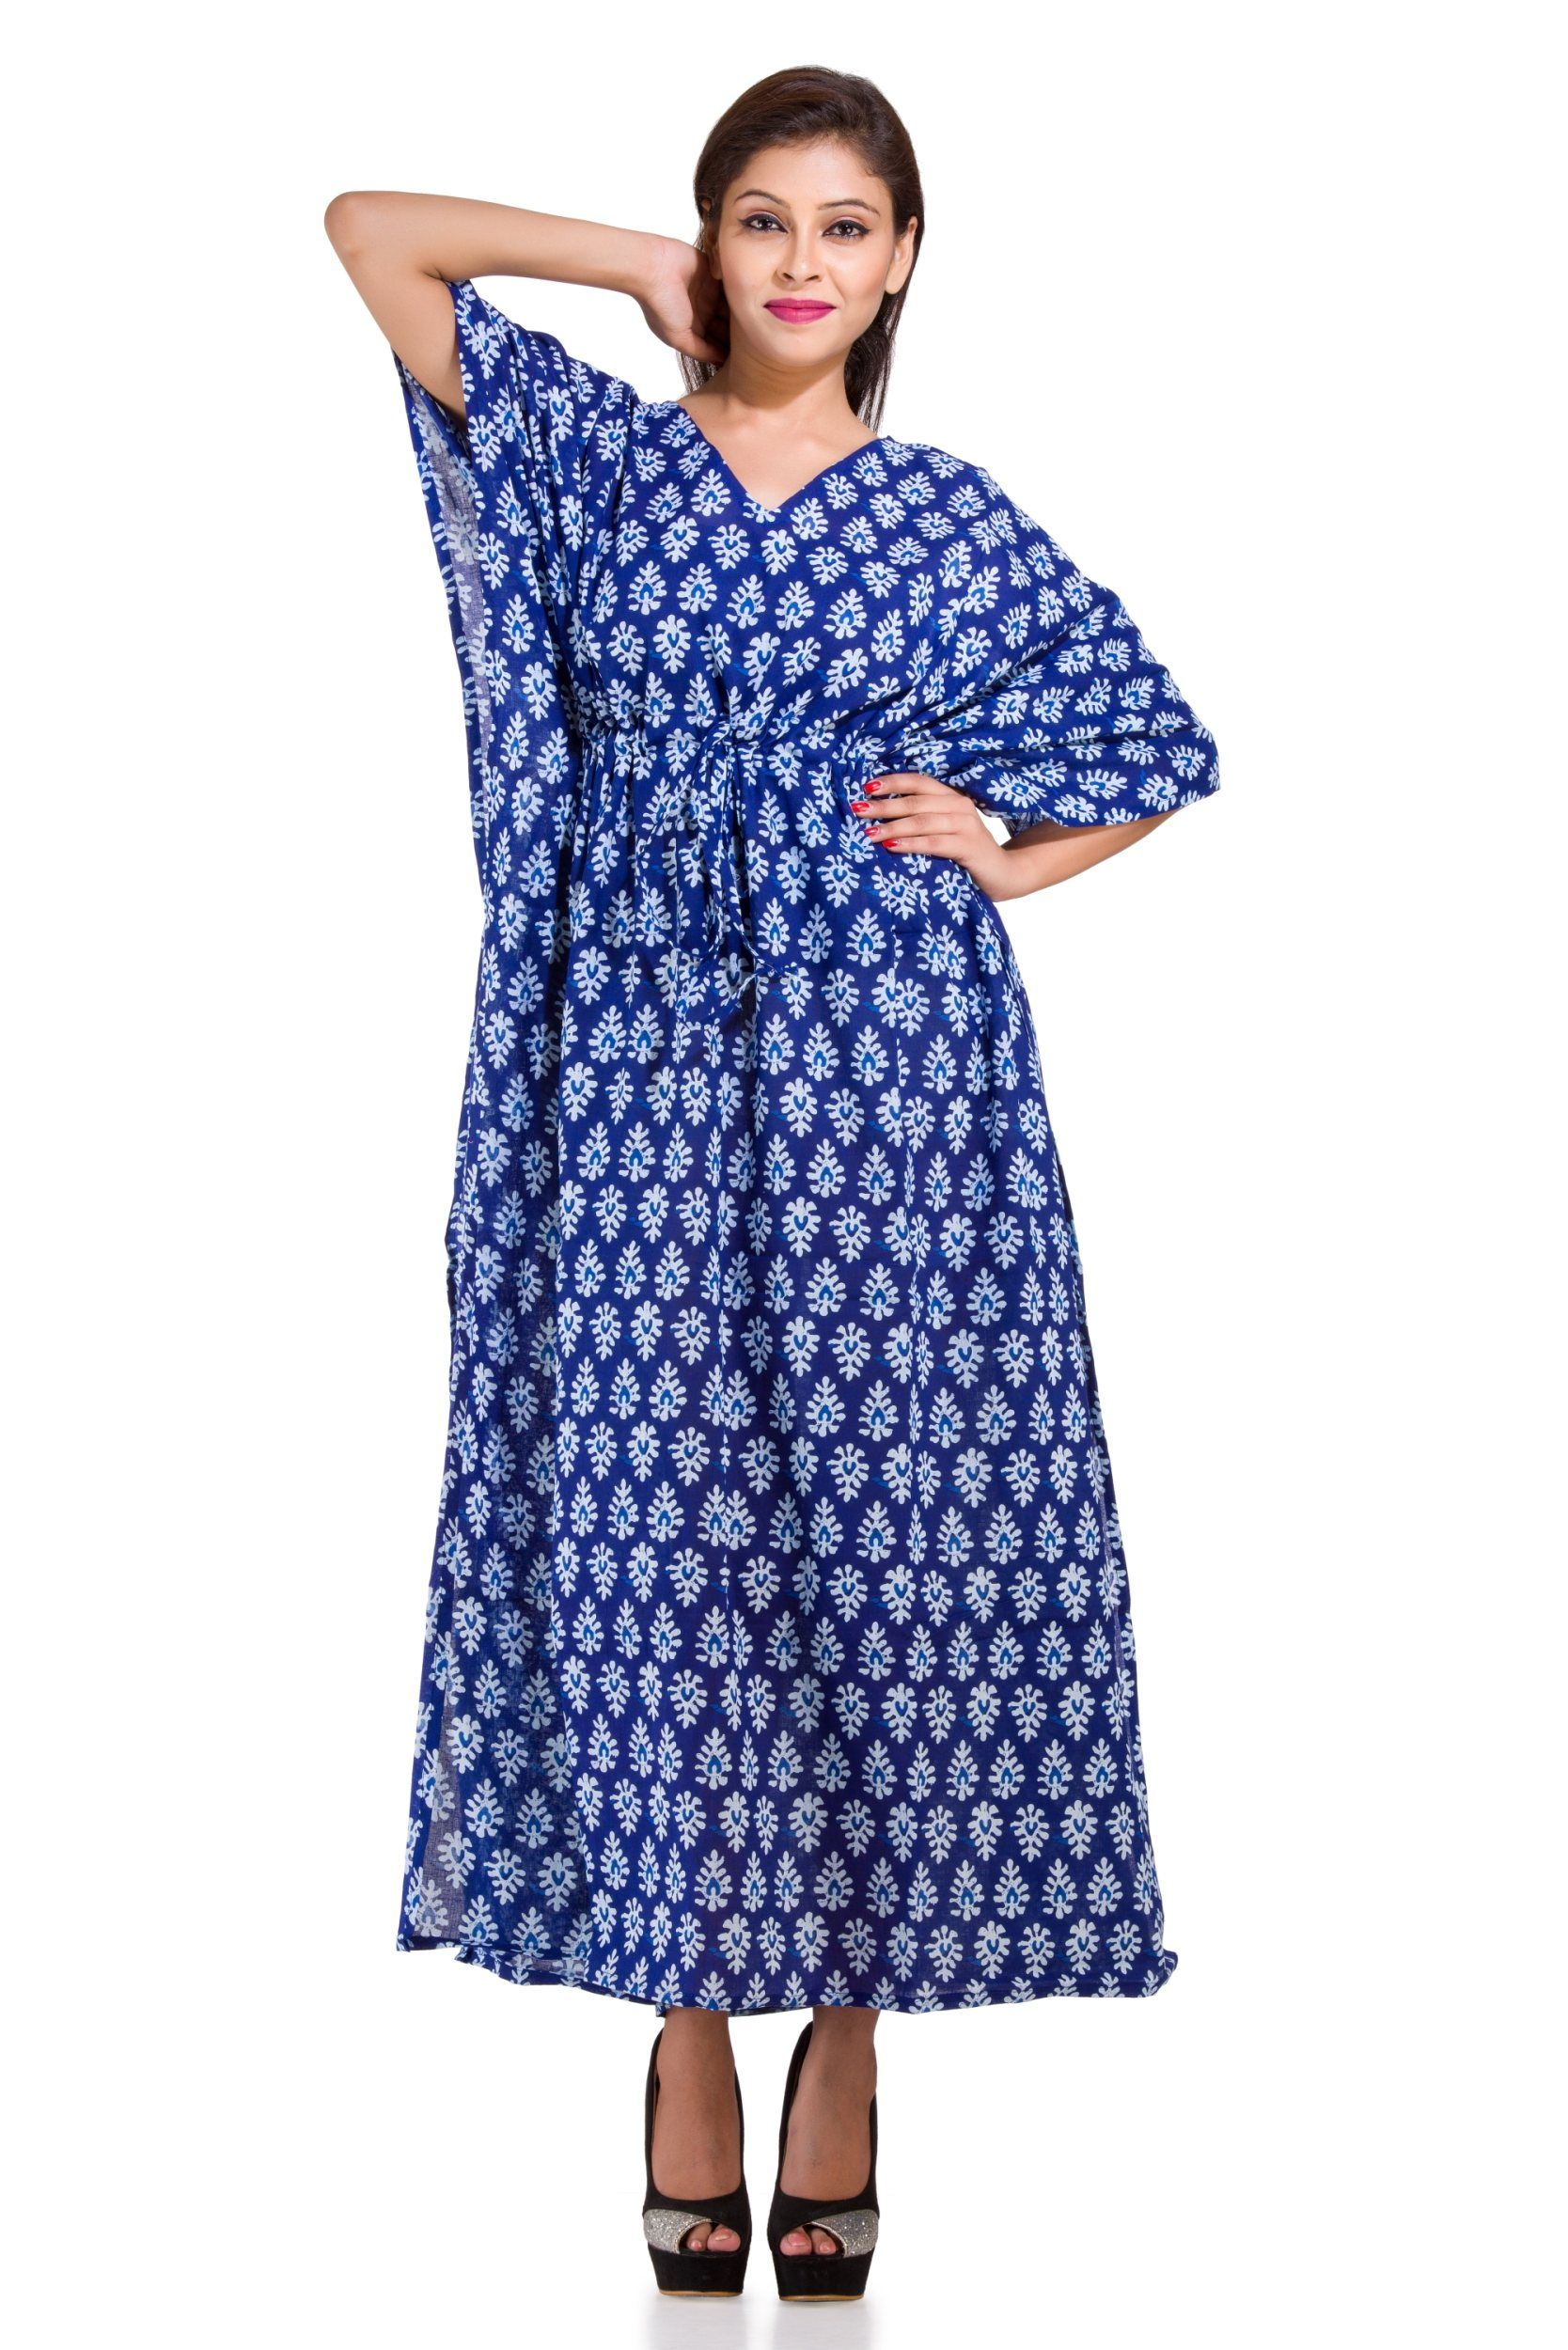 0bb95998ac This Beautiful Kaftan or can be called as Tunic is made with super fine  quality cotton and designs have been crafted by Hand Screen Printed.